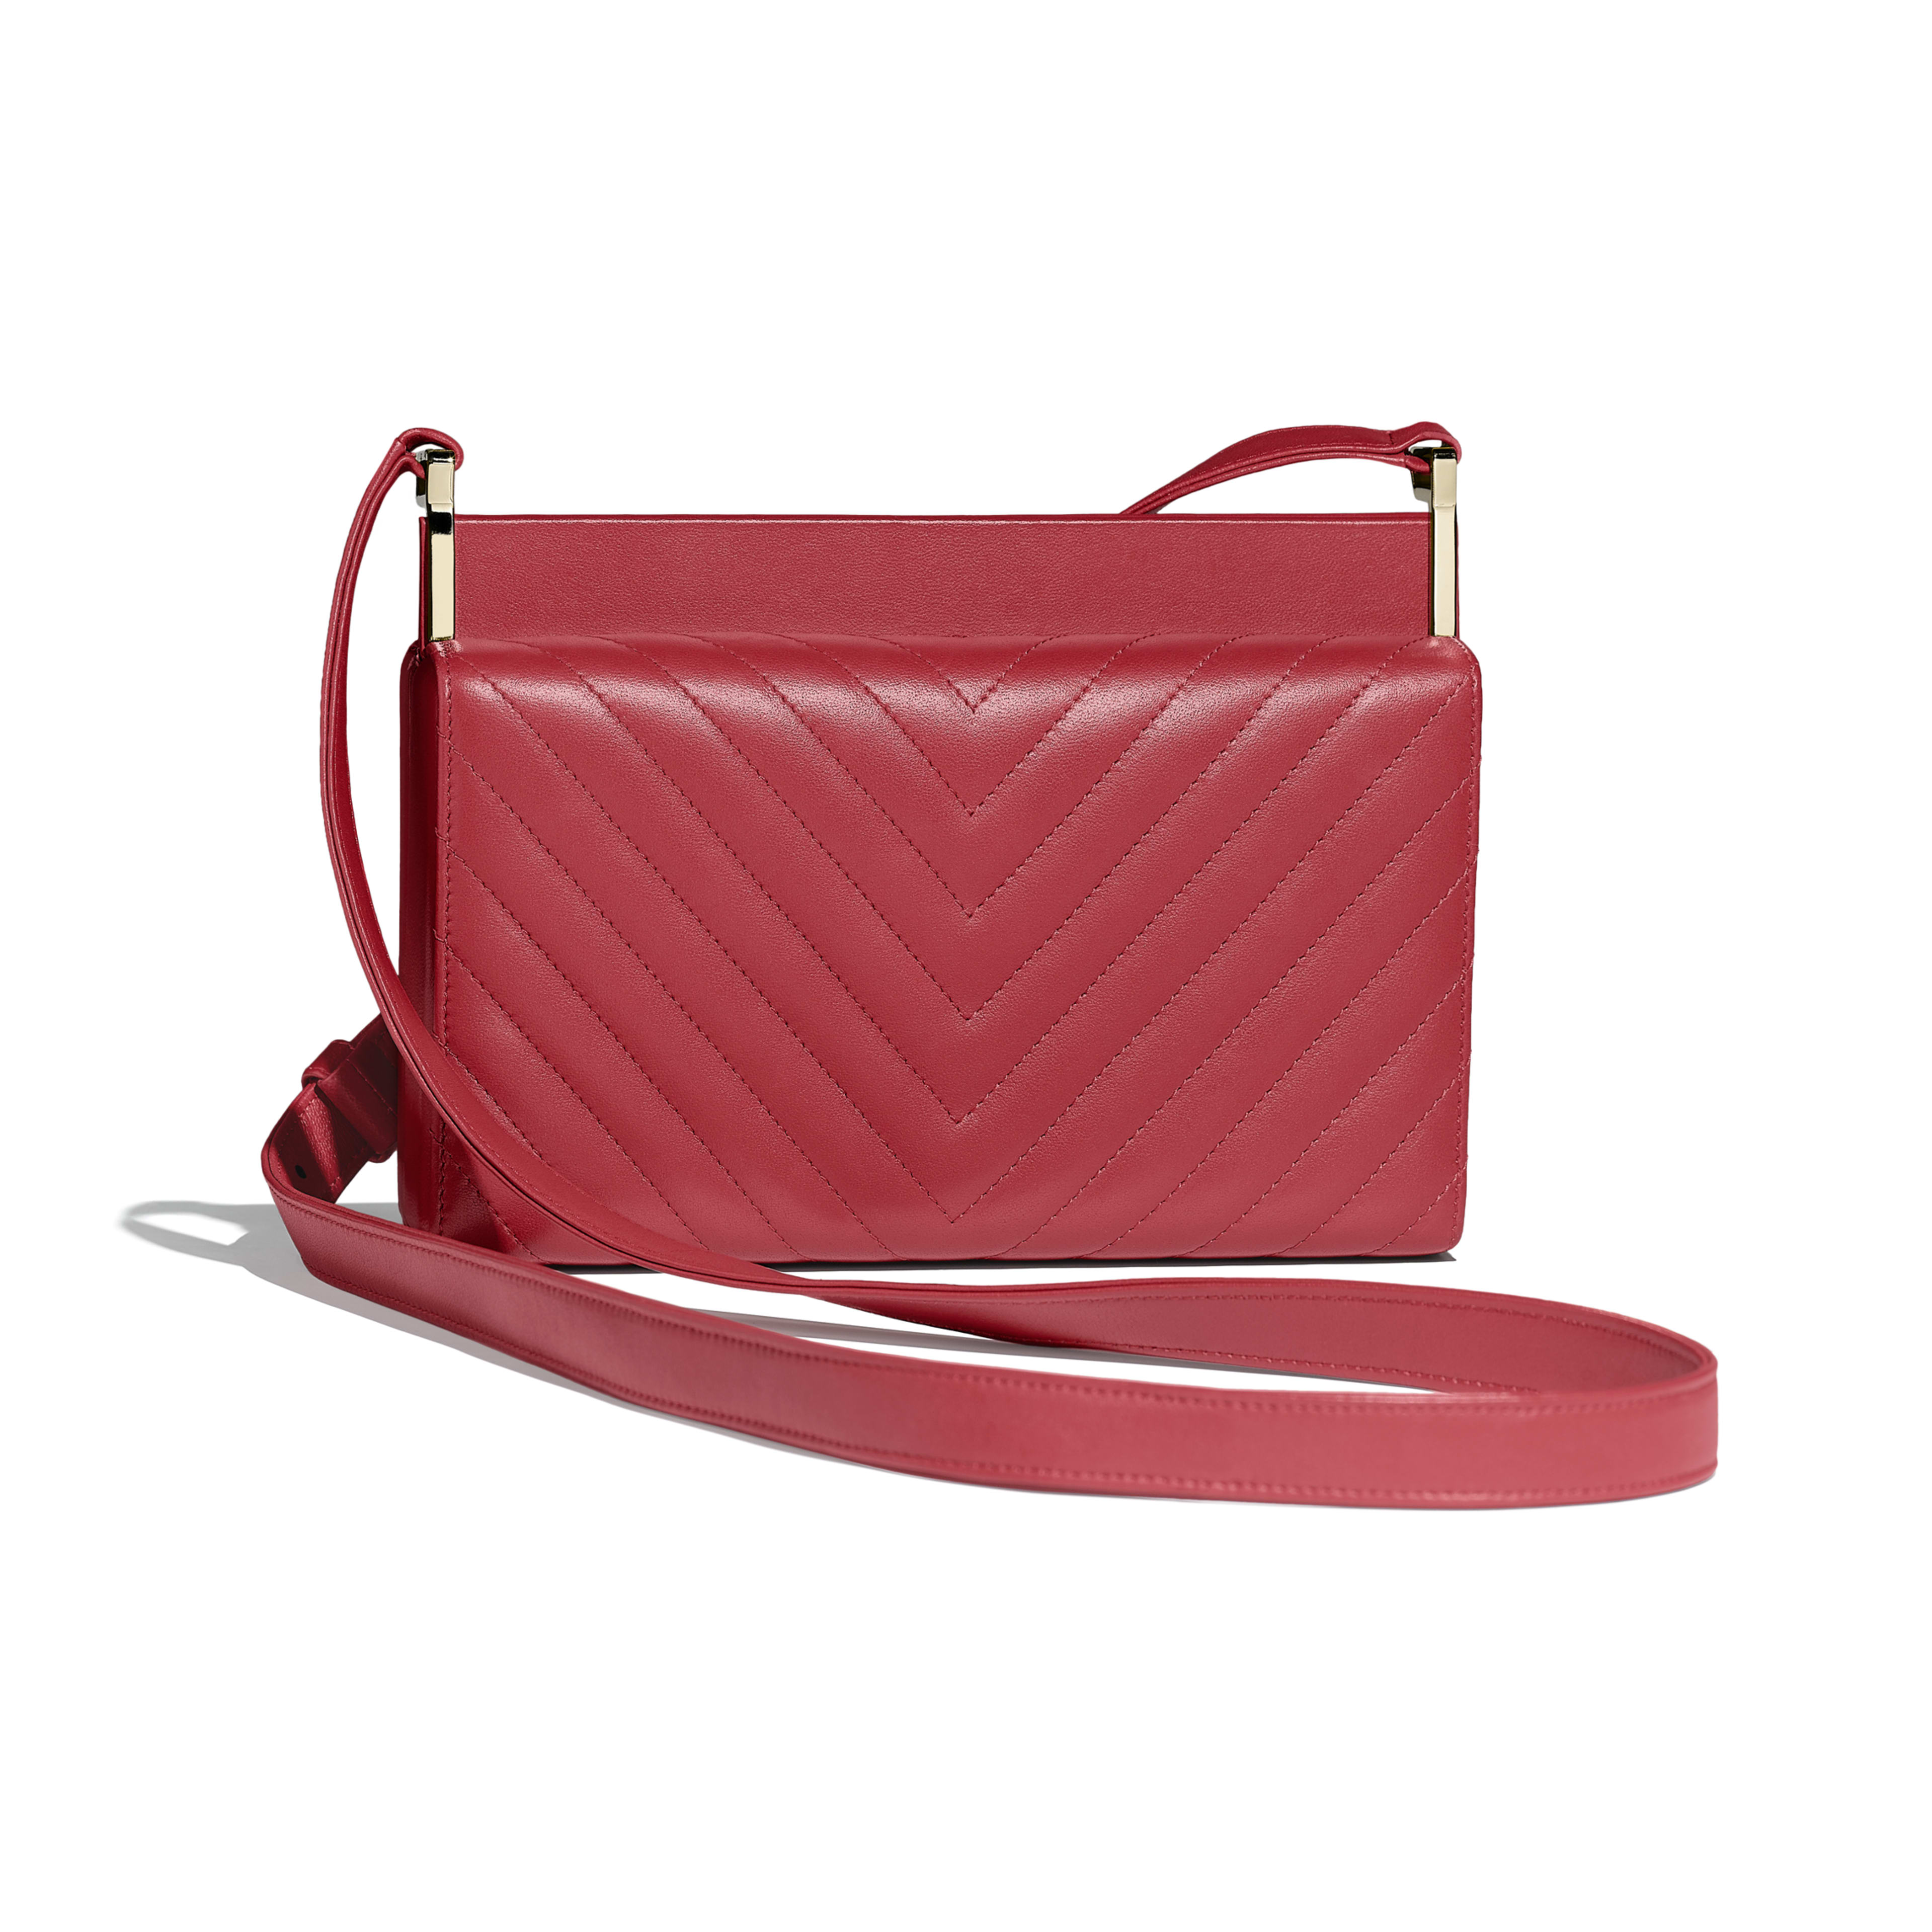 Clutch - Red - Lambskin & Gold-Tone Metal - Alternative view - see full sized version